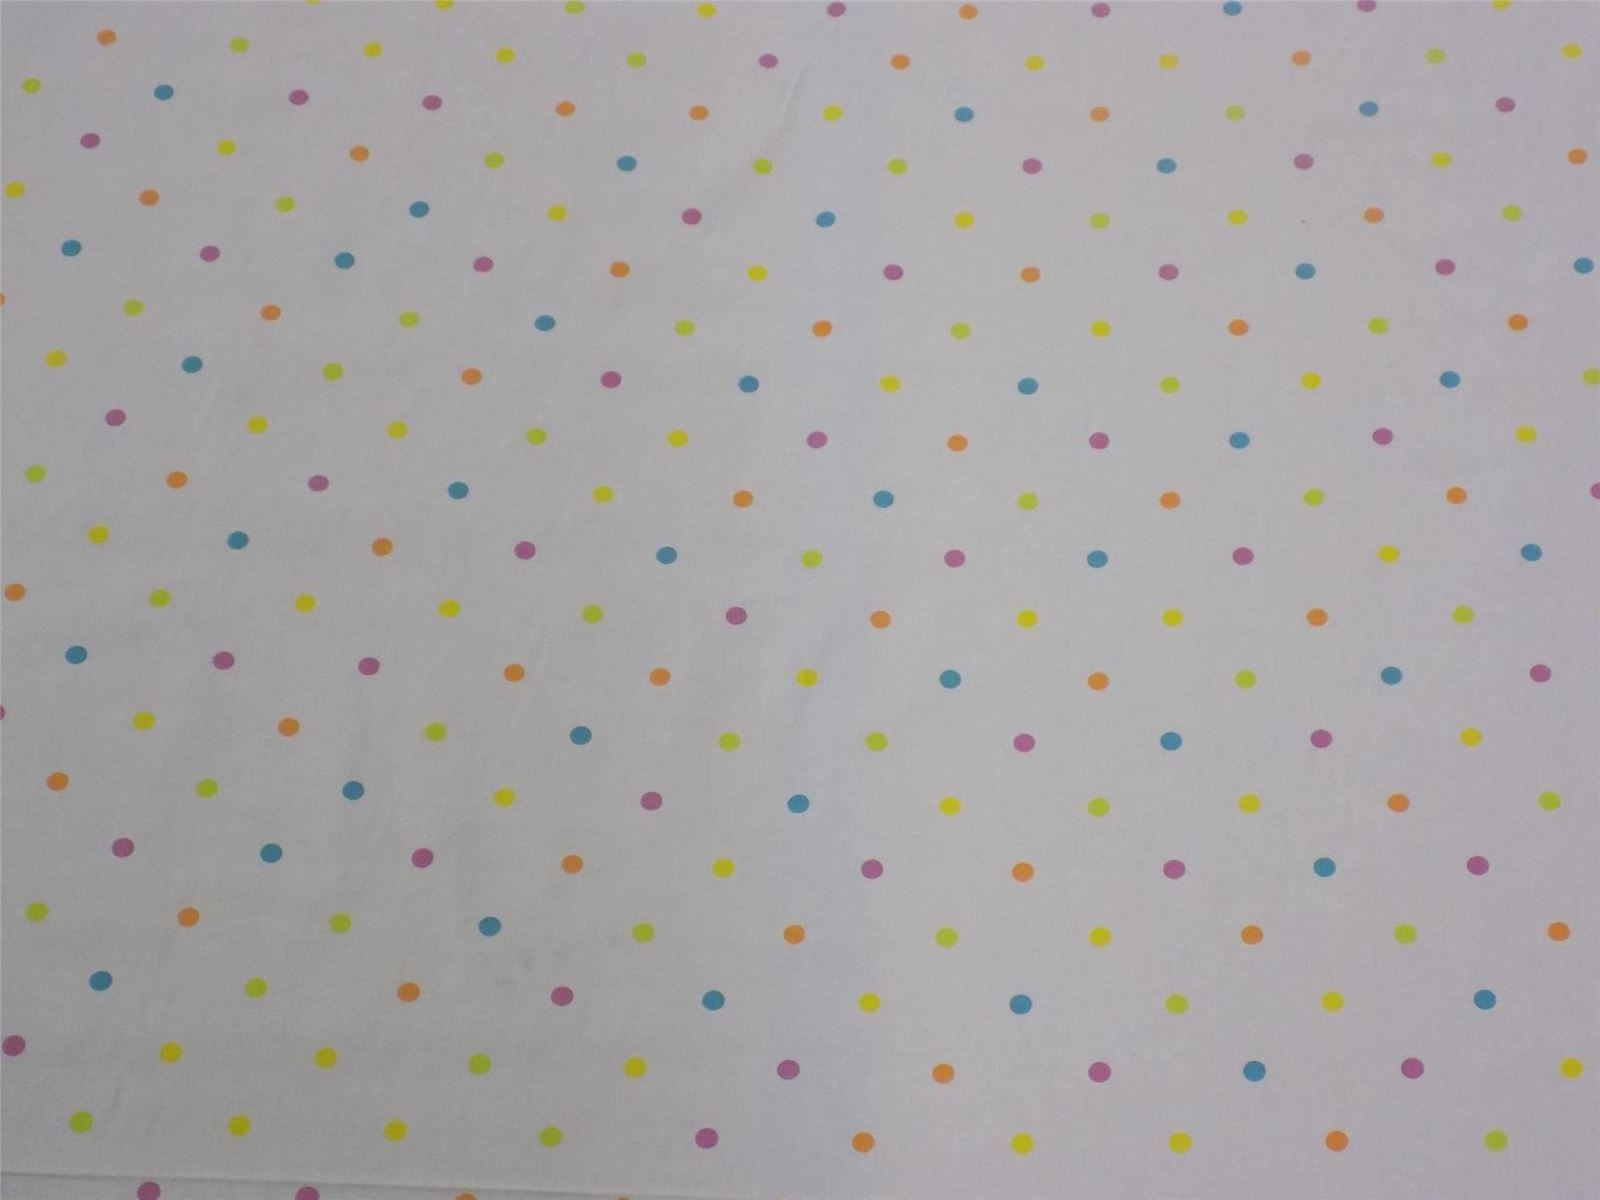 Spots and Dots White Orange Pink Cotton High Quality Fabric Material *3 Sizes*